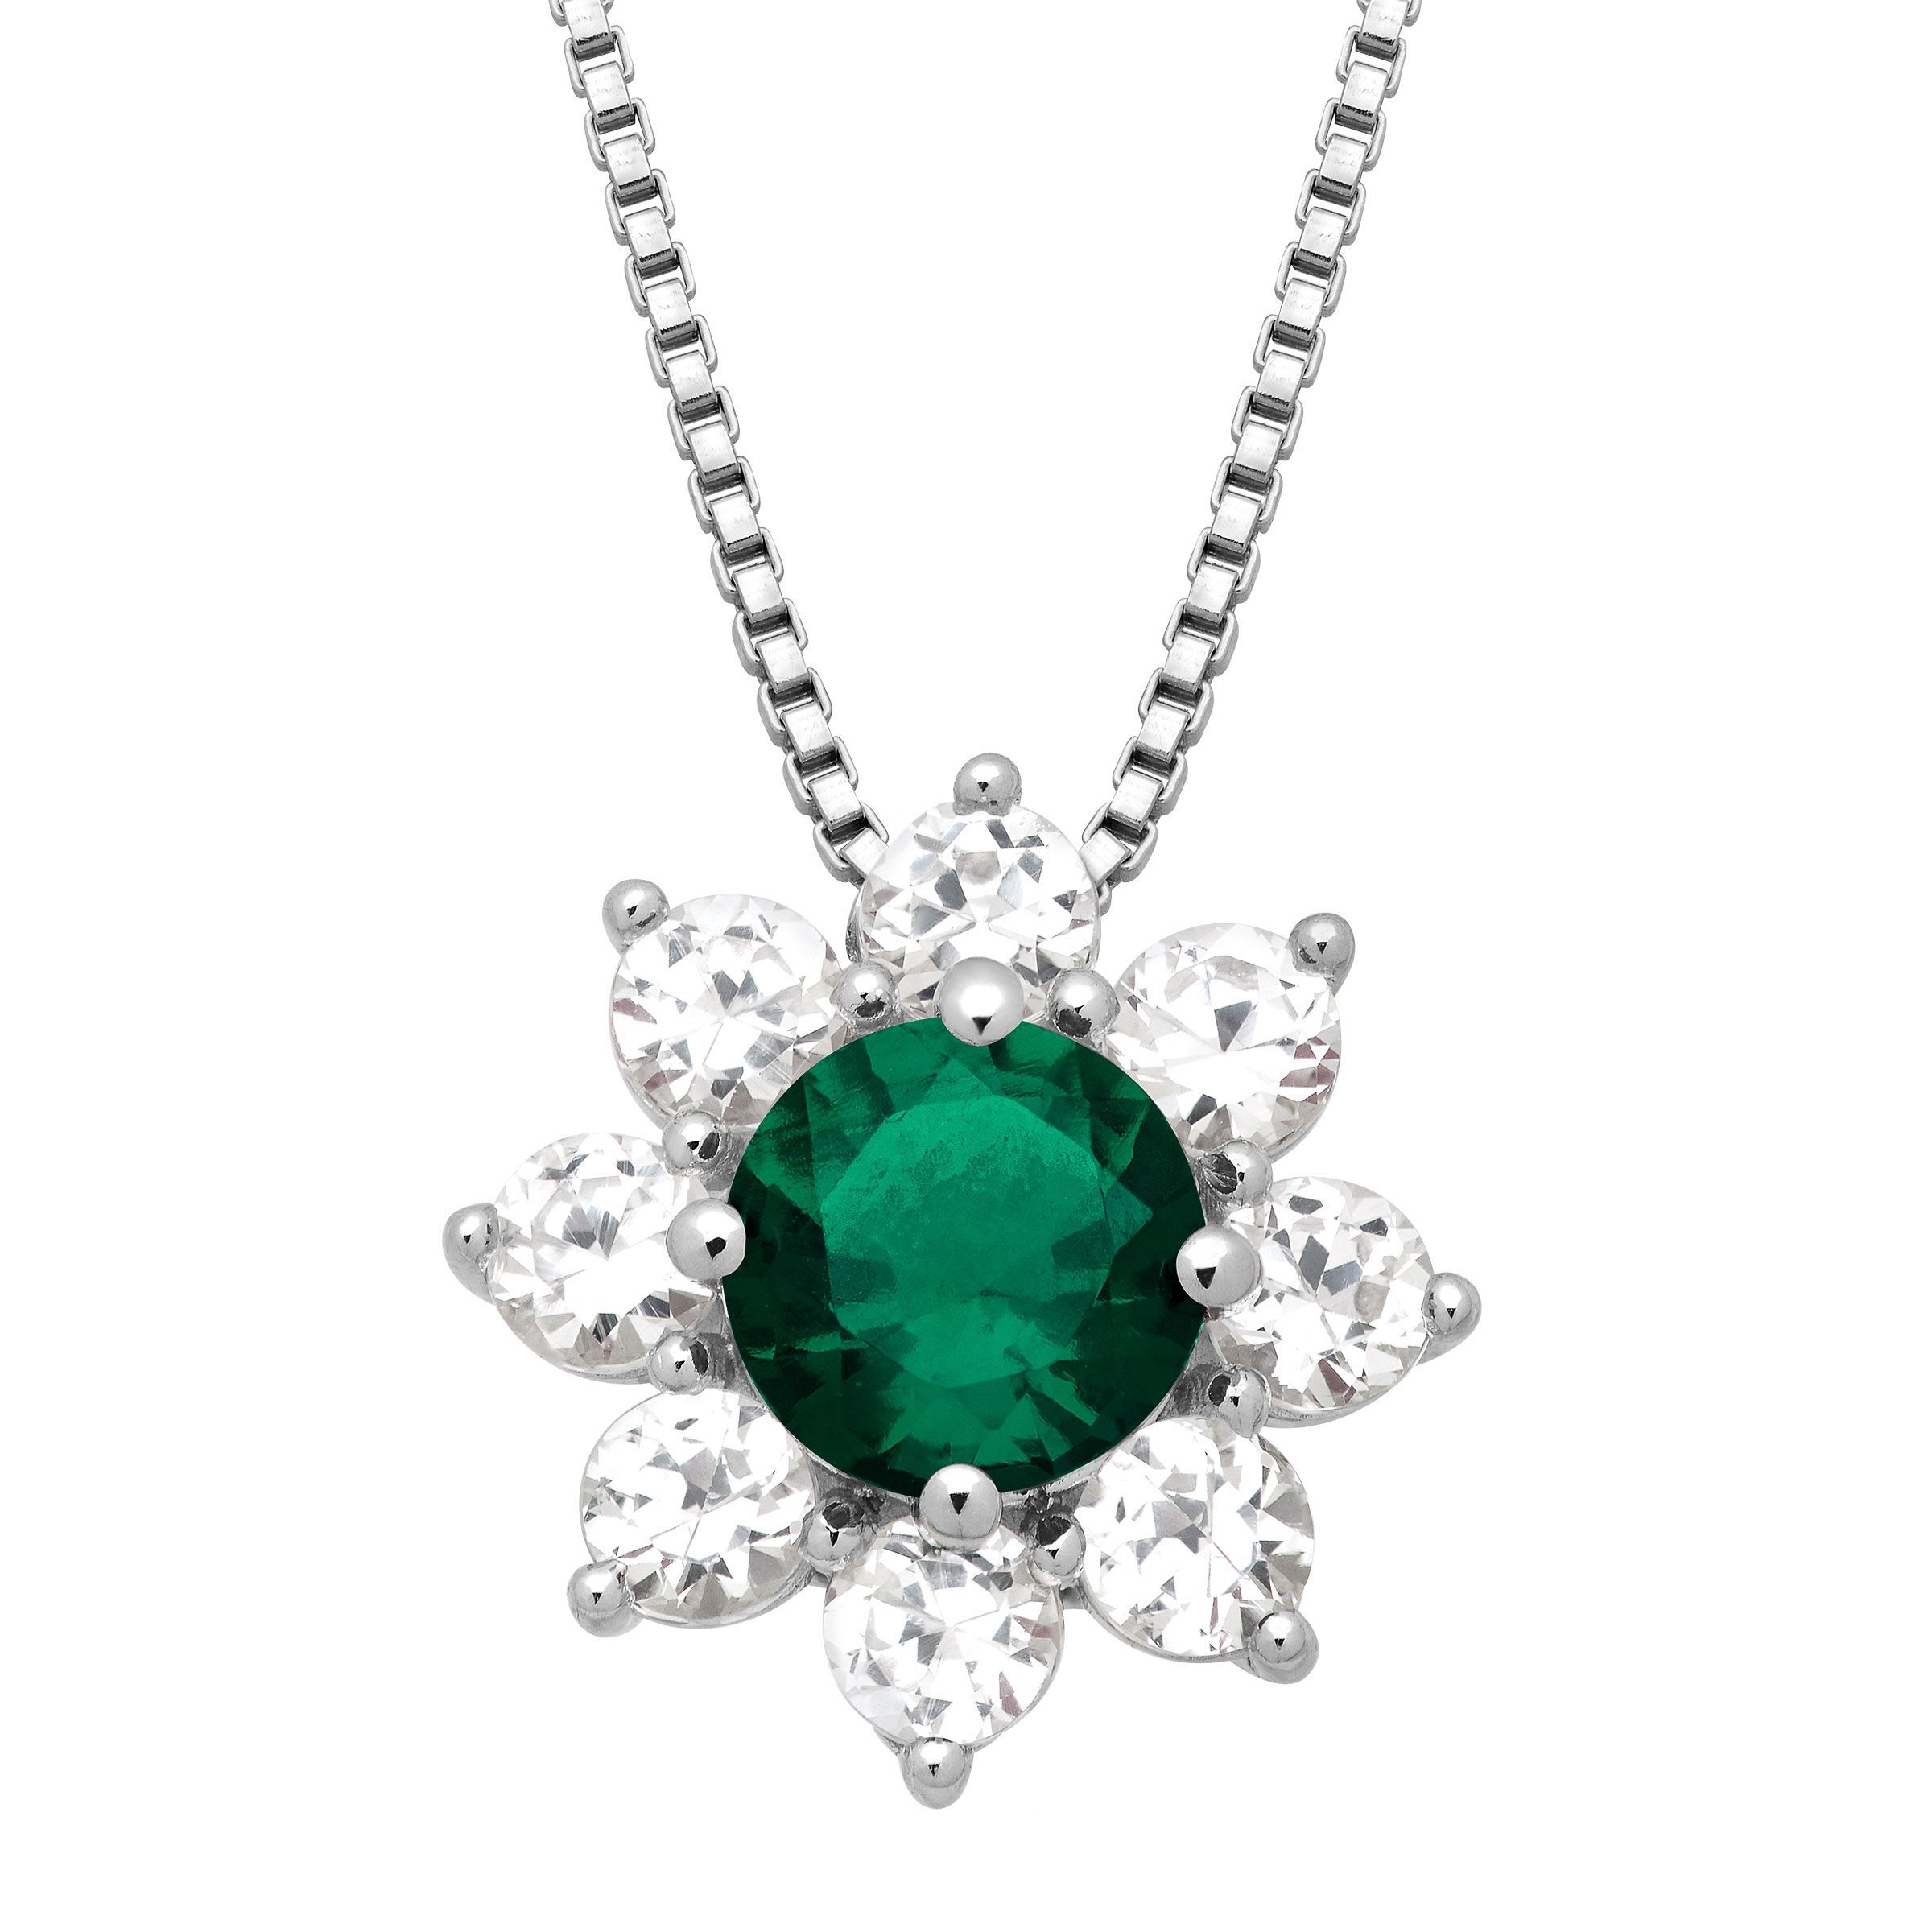 pendant diamonds stone emerald kiko product necklace